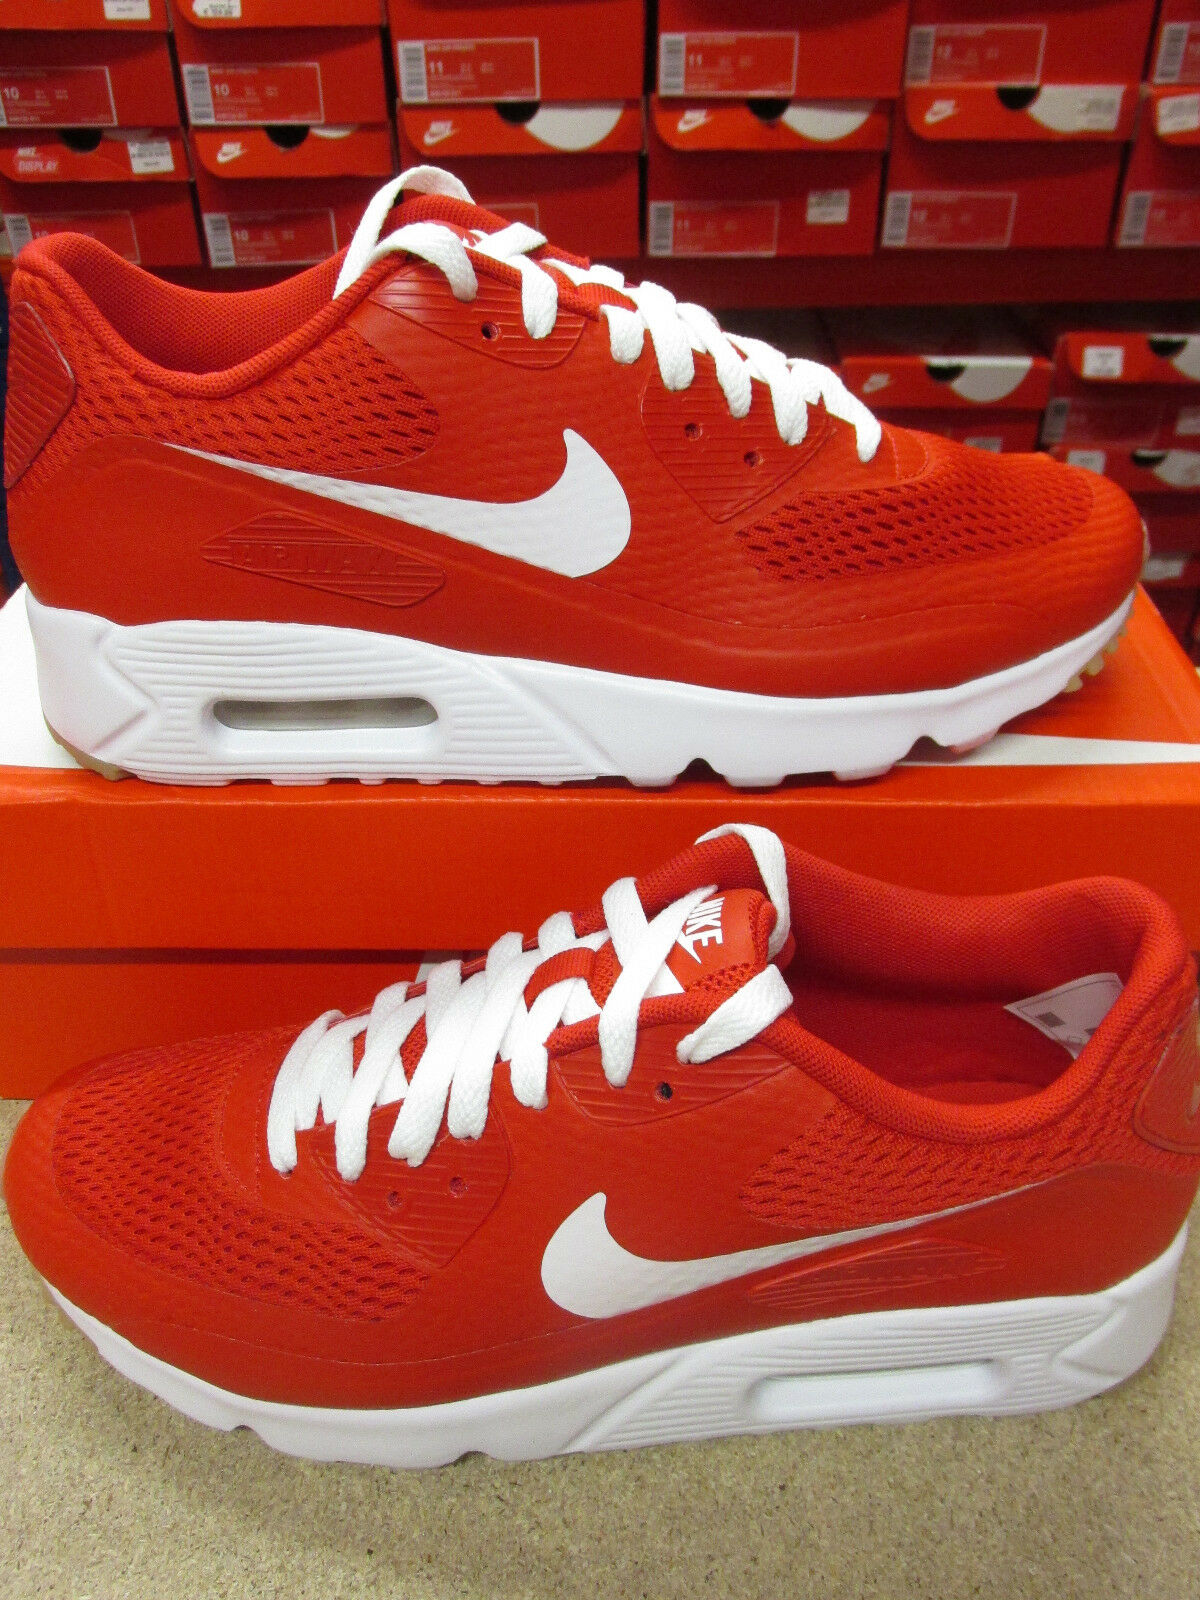 nike air max 90 ultra essential mens trainers 819474 601 sneakers shoes